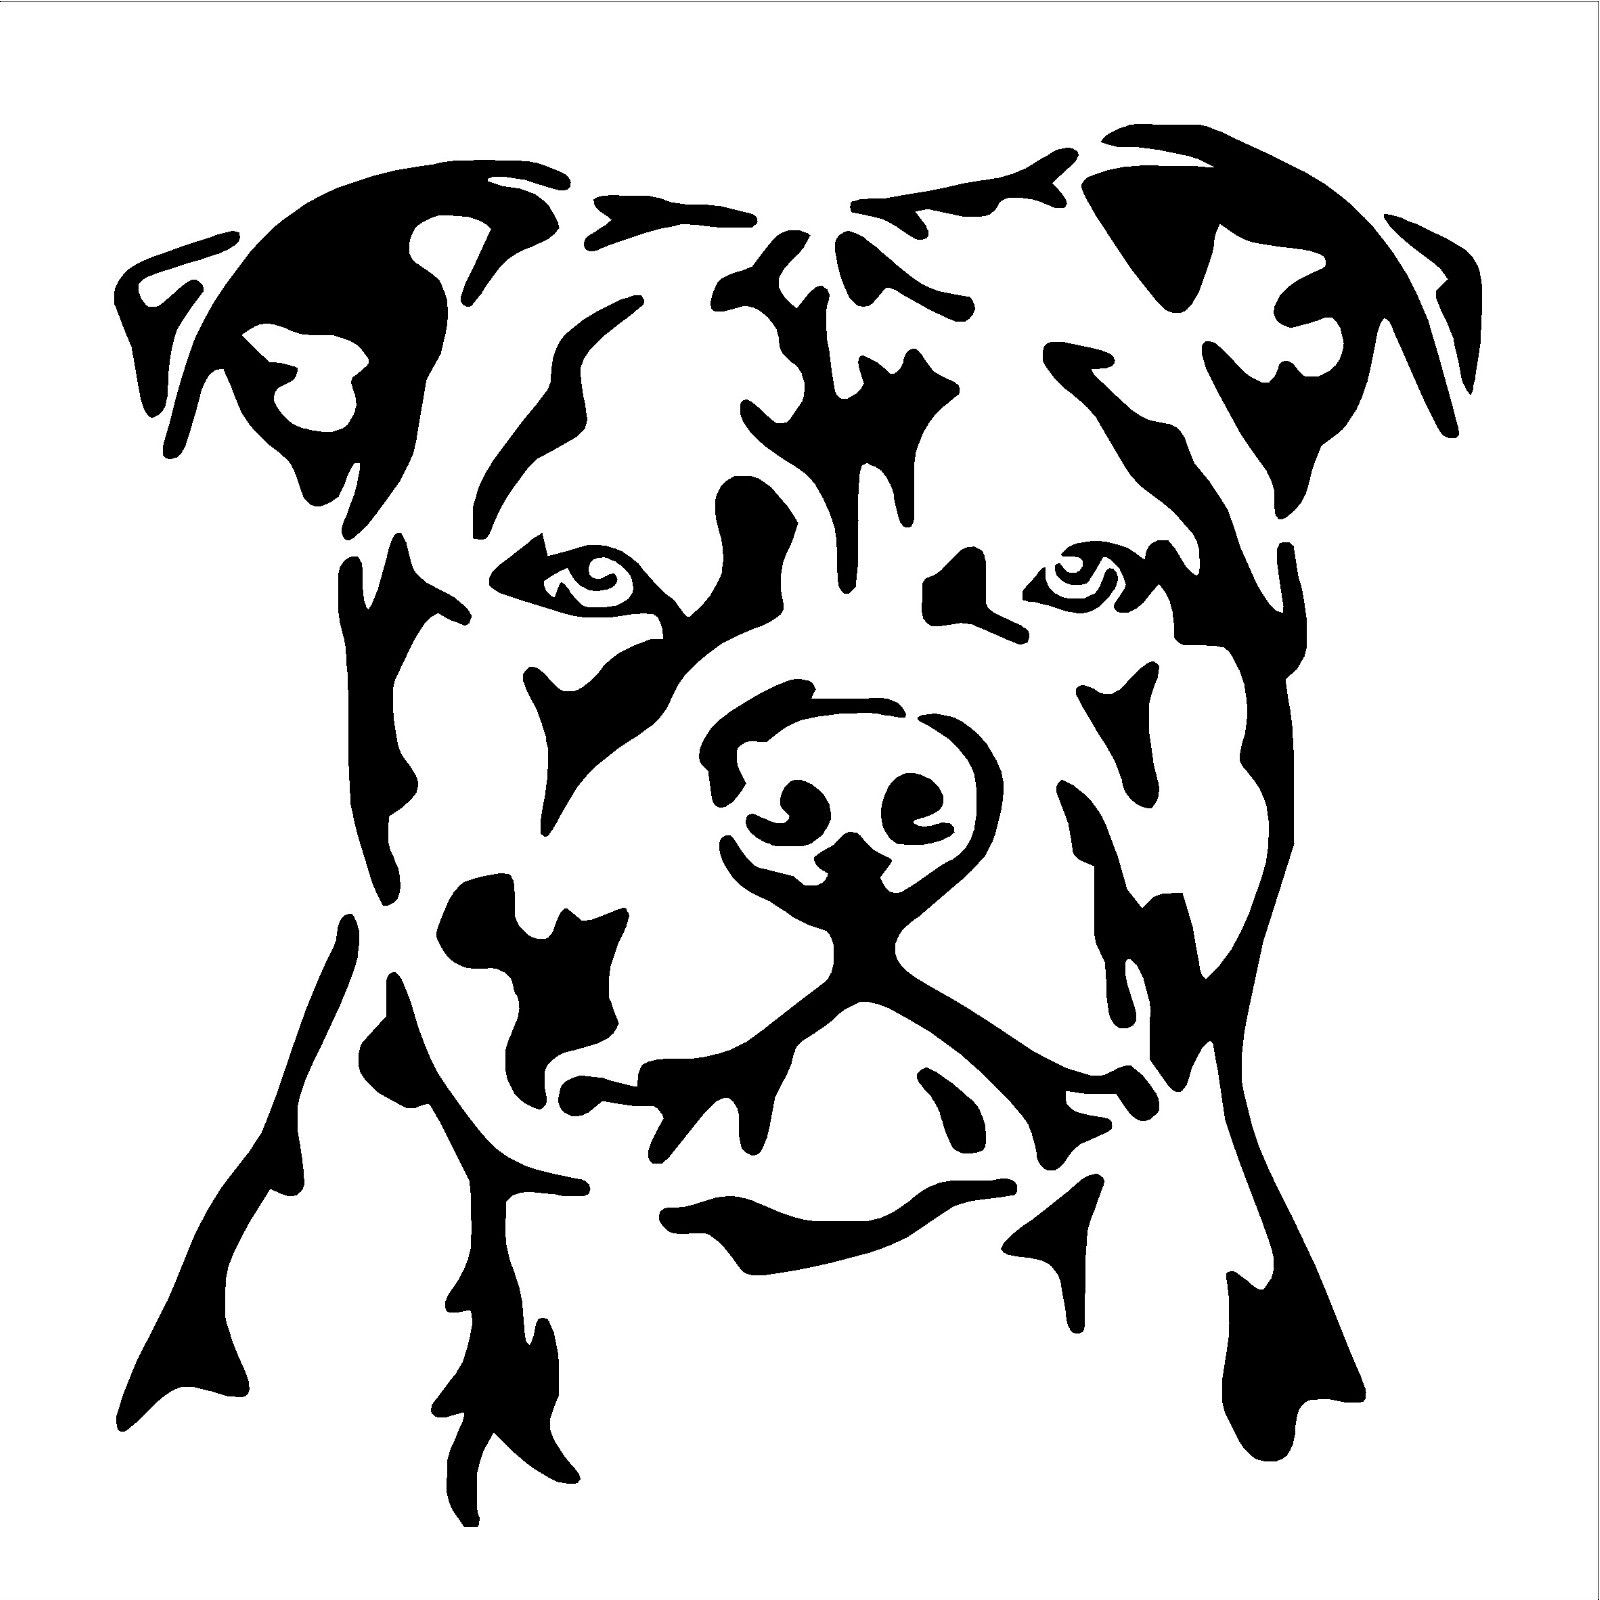 Staffordshire Bull Terrier Dog Vinyl Wall Art Sticker Decal Staffy Throughout Popular Pitbull Wall Art (View 13 of 15)